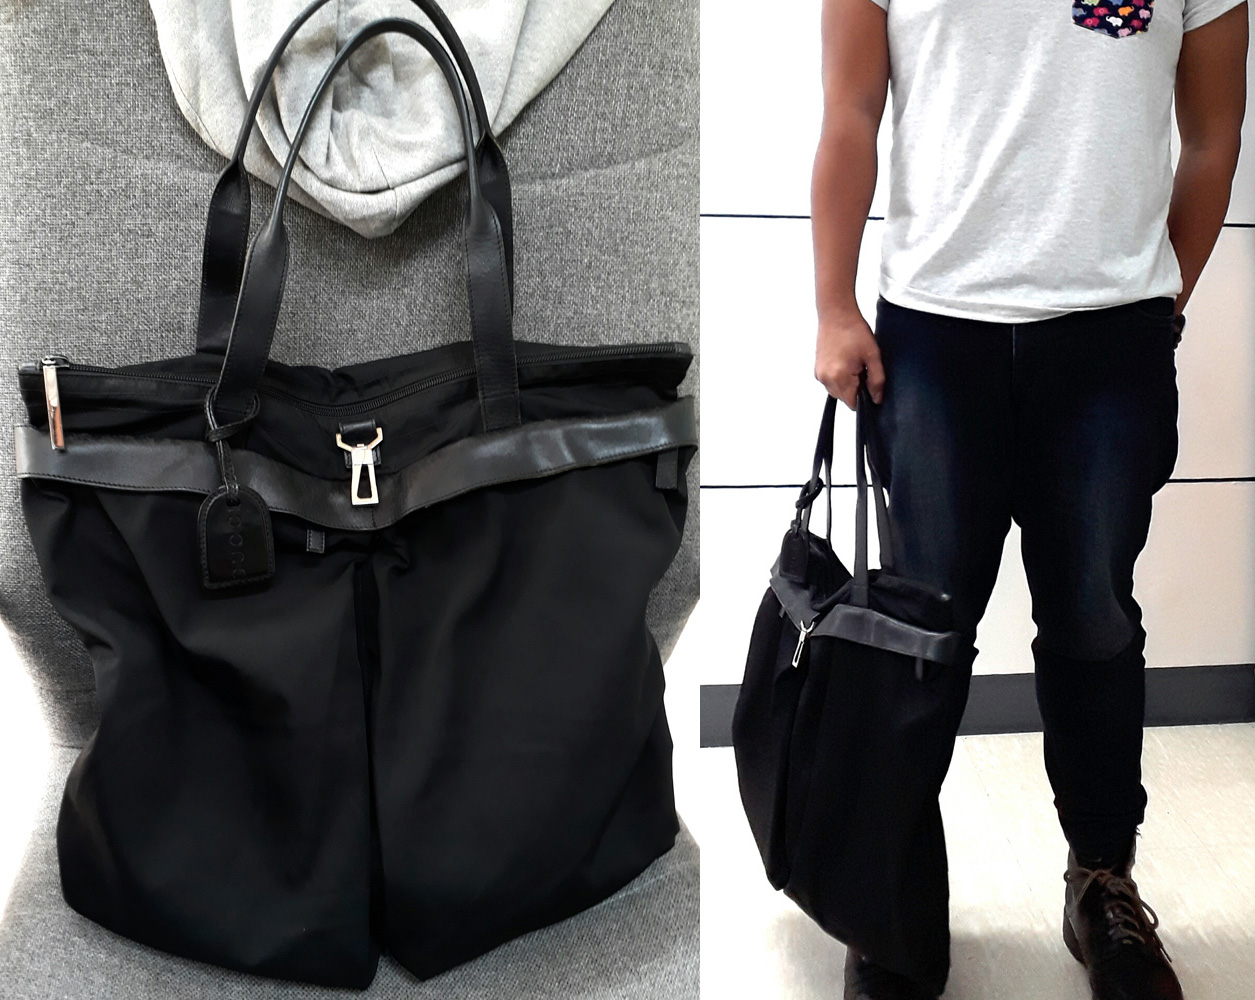 Gucci in black canvas and leather tote with silver hardware, Doc Martens 8-hole boots